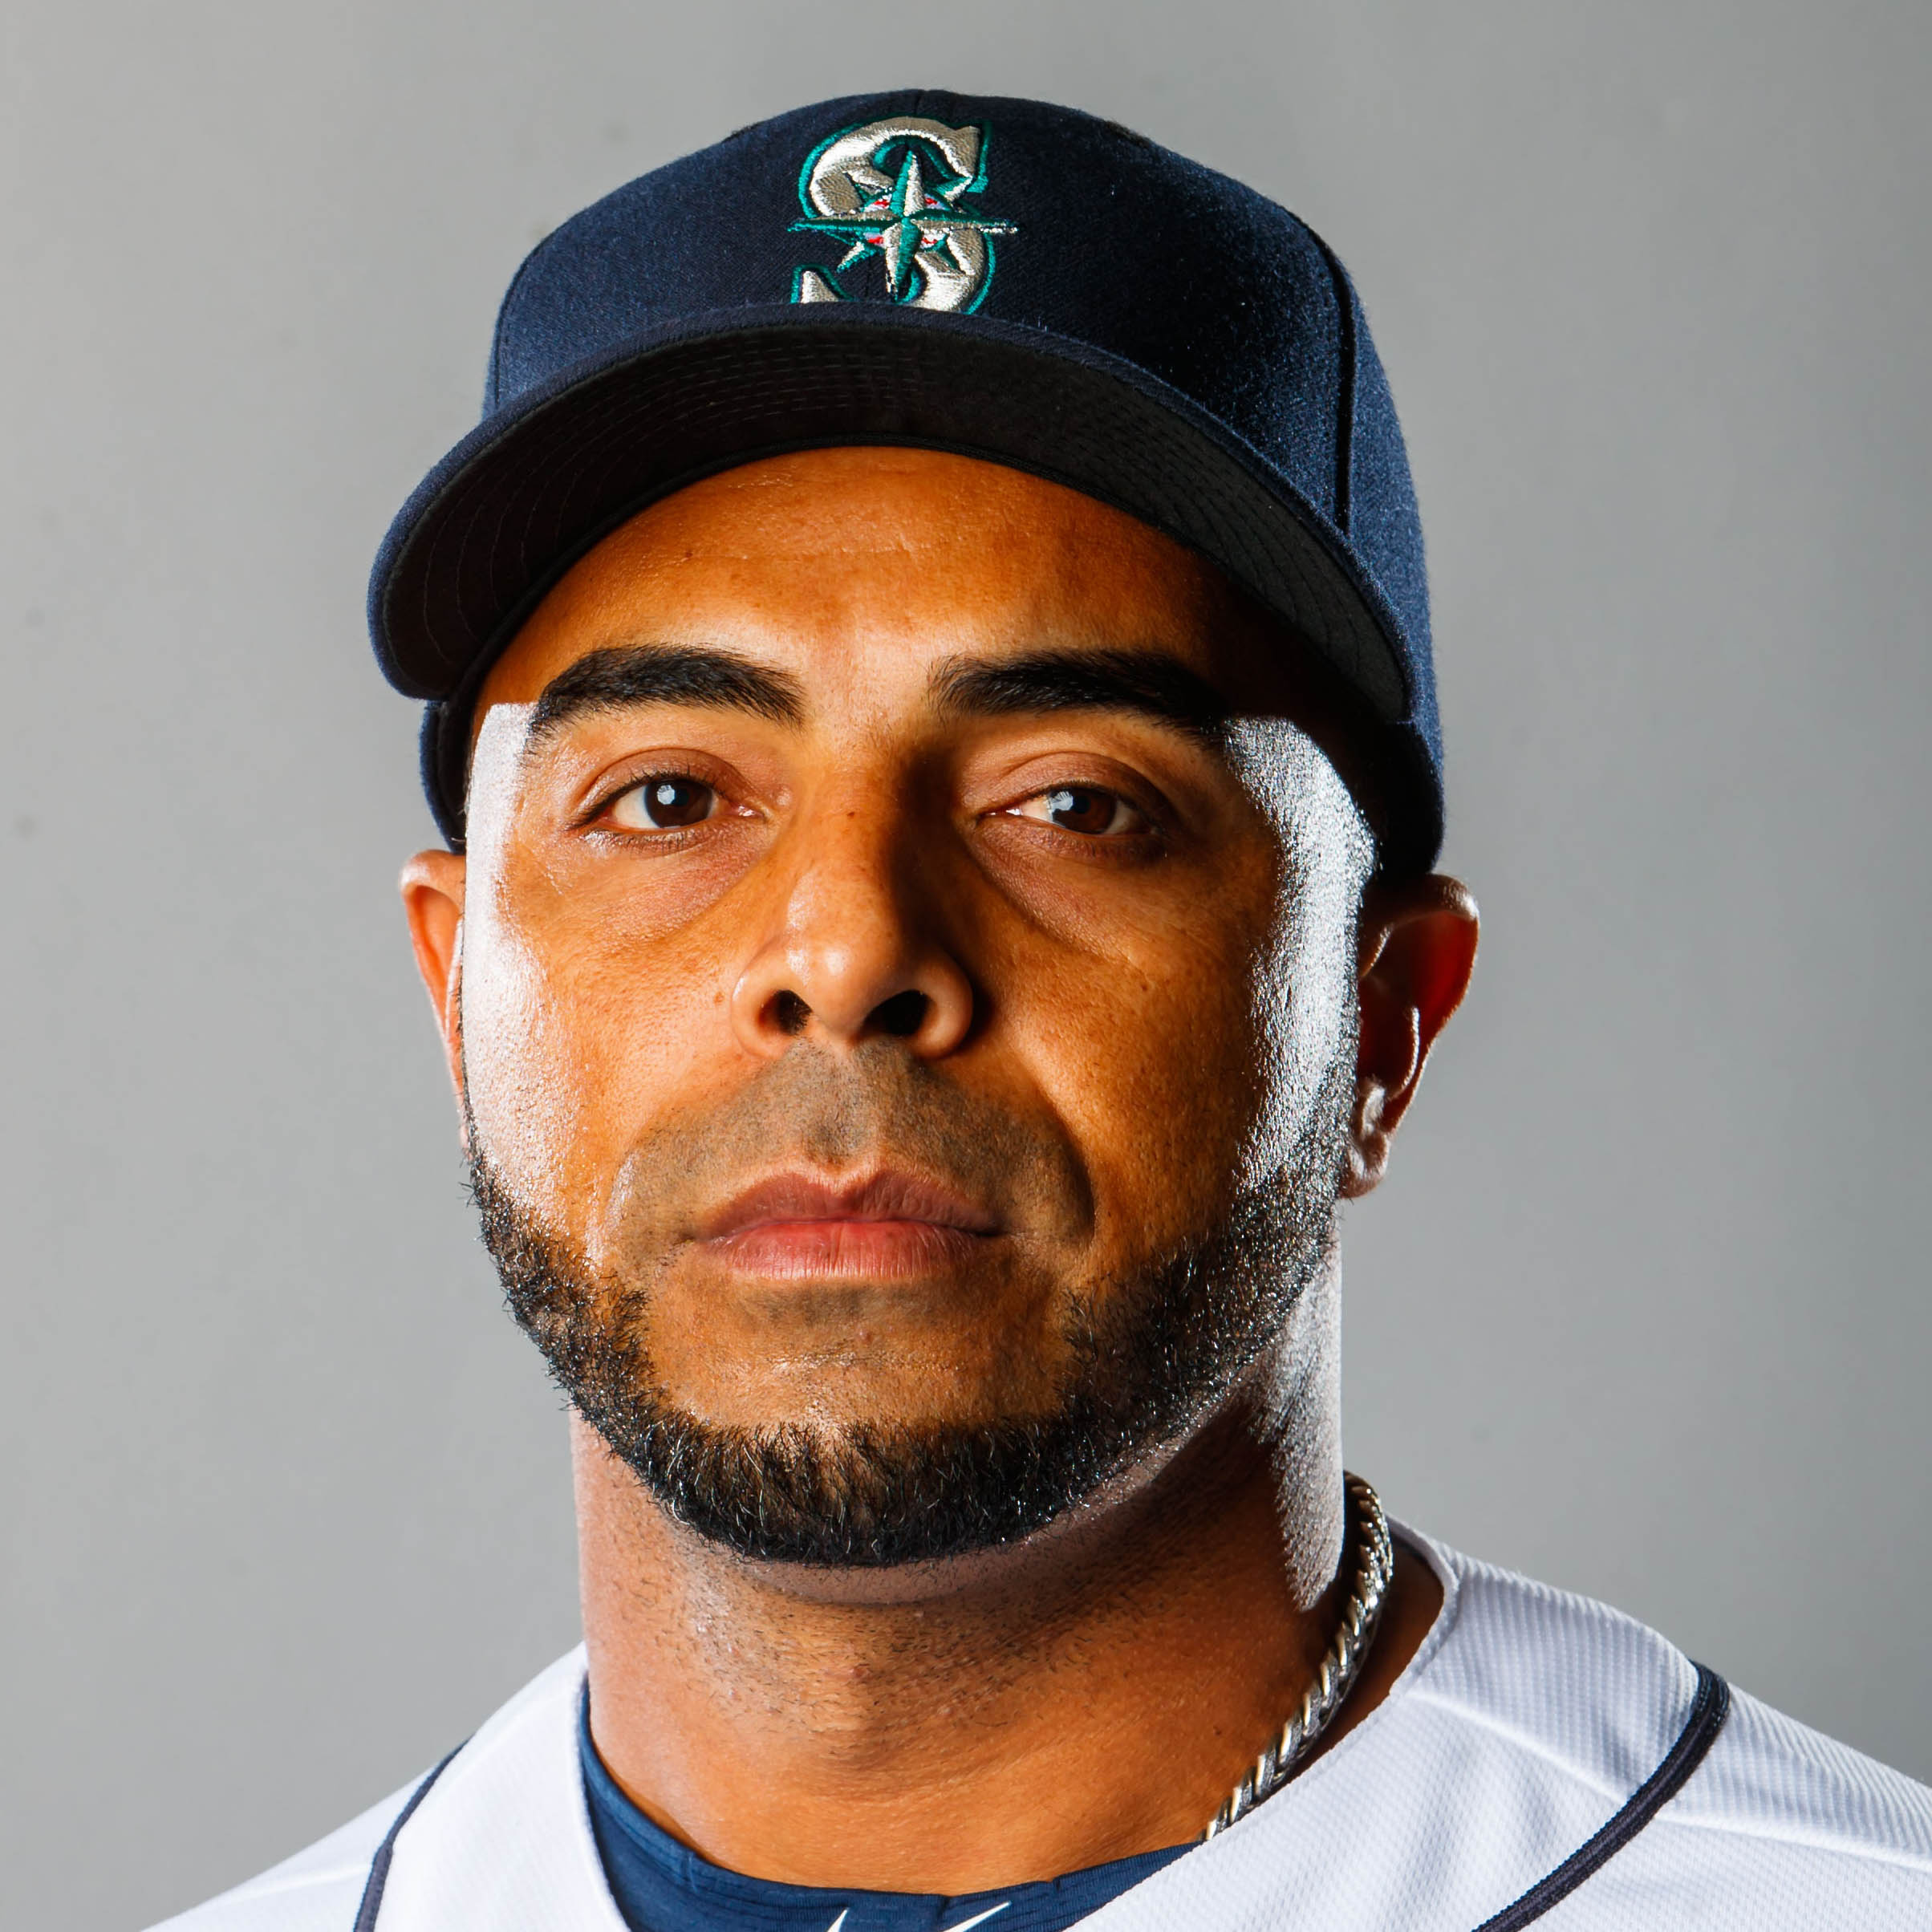 Nelson Cruz Headshot